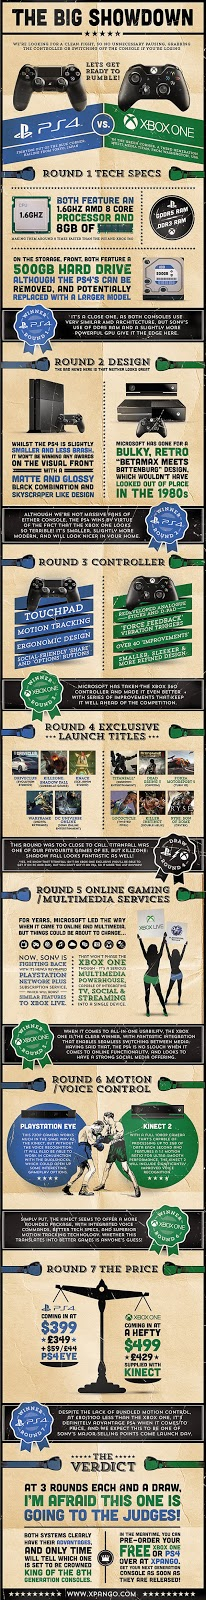 Xbox one vs Playstations 4 Infographic